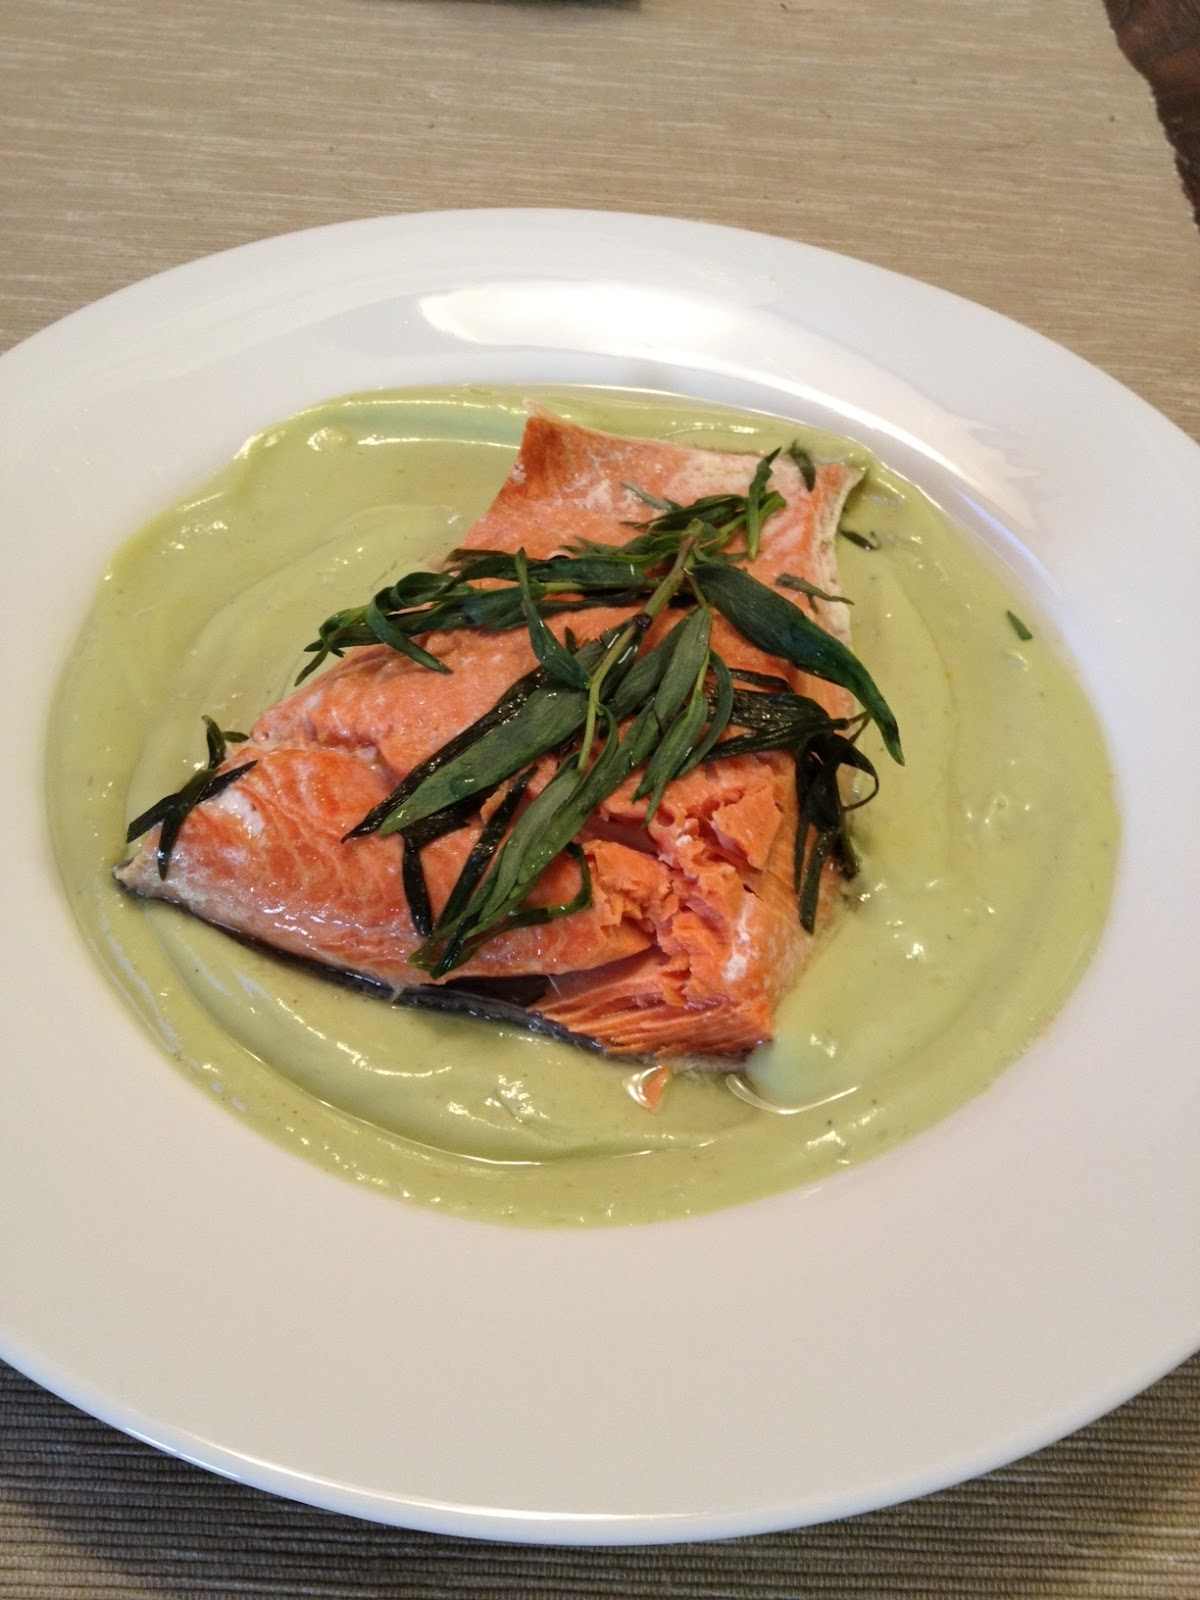 Simply scrumptious: Tarragon Roasted Salmon with Creamy Avocado Sauce